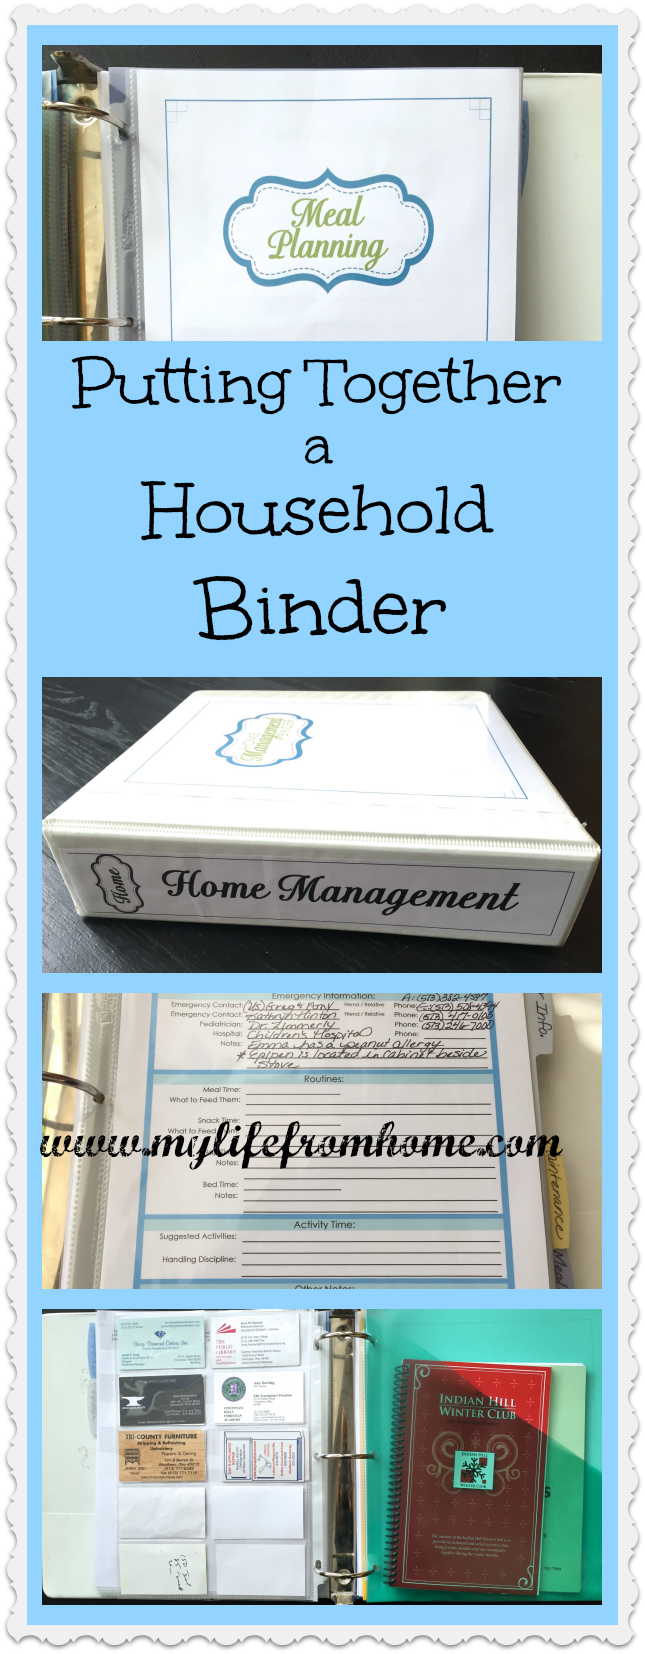 Putting Together a Household Organization Binder is part of Household Organization Printables - tuneup log Monthly budgets Important monthly dates (birthdays, anniversaries, etc ) Financial Information Instead of reinventing the wheel, I researched and found some printables that would work great for what I was looking to do